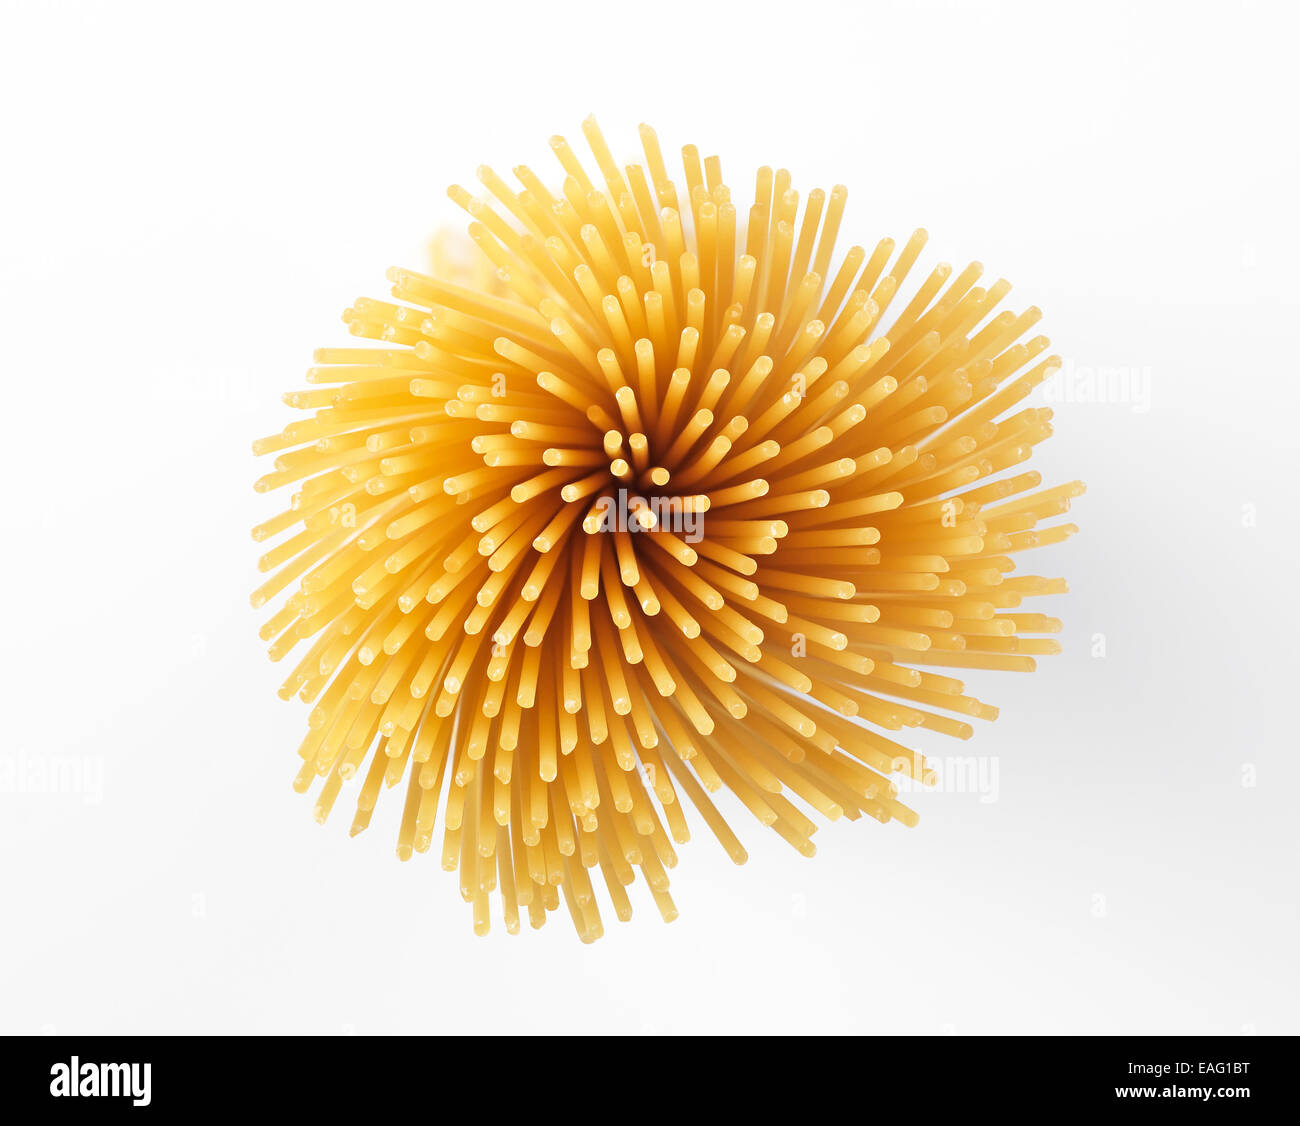 Isolierte Pasta Stockbild